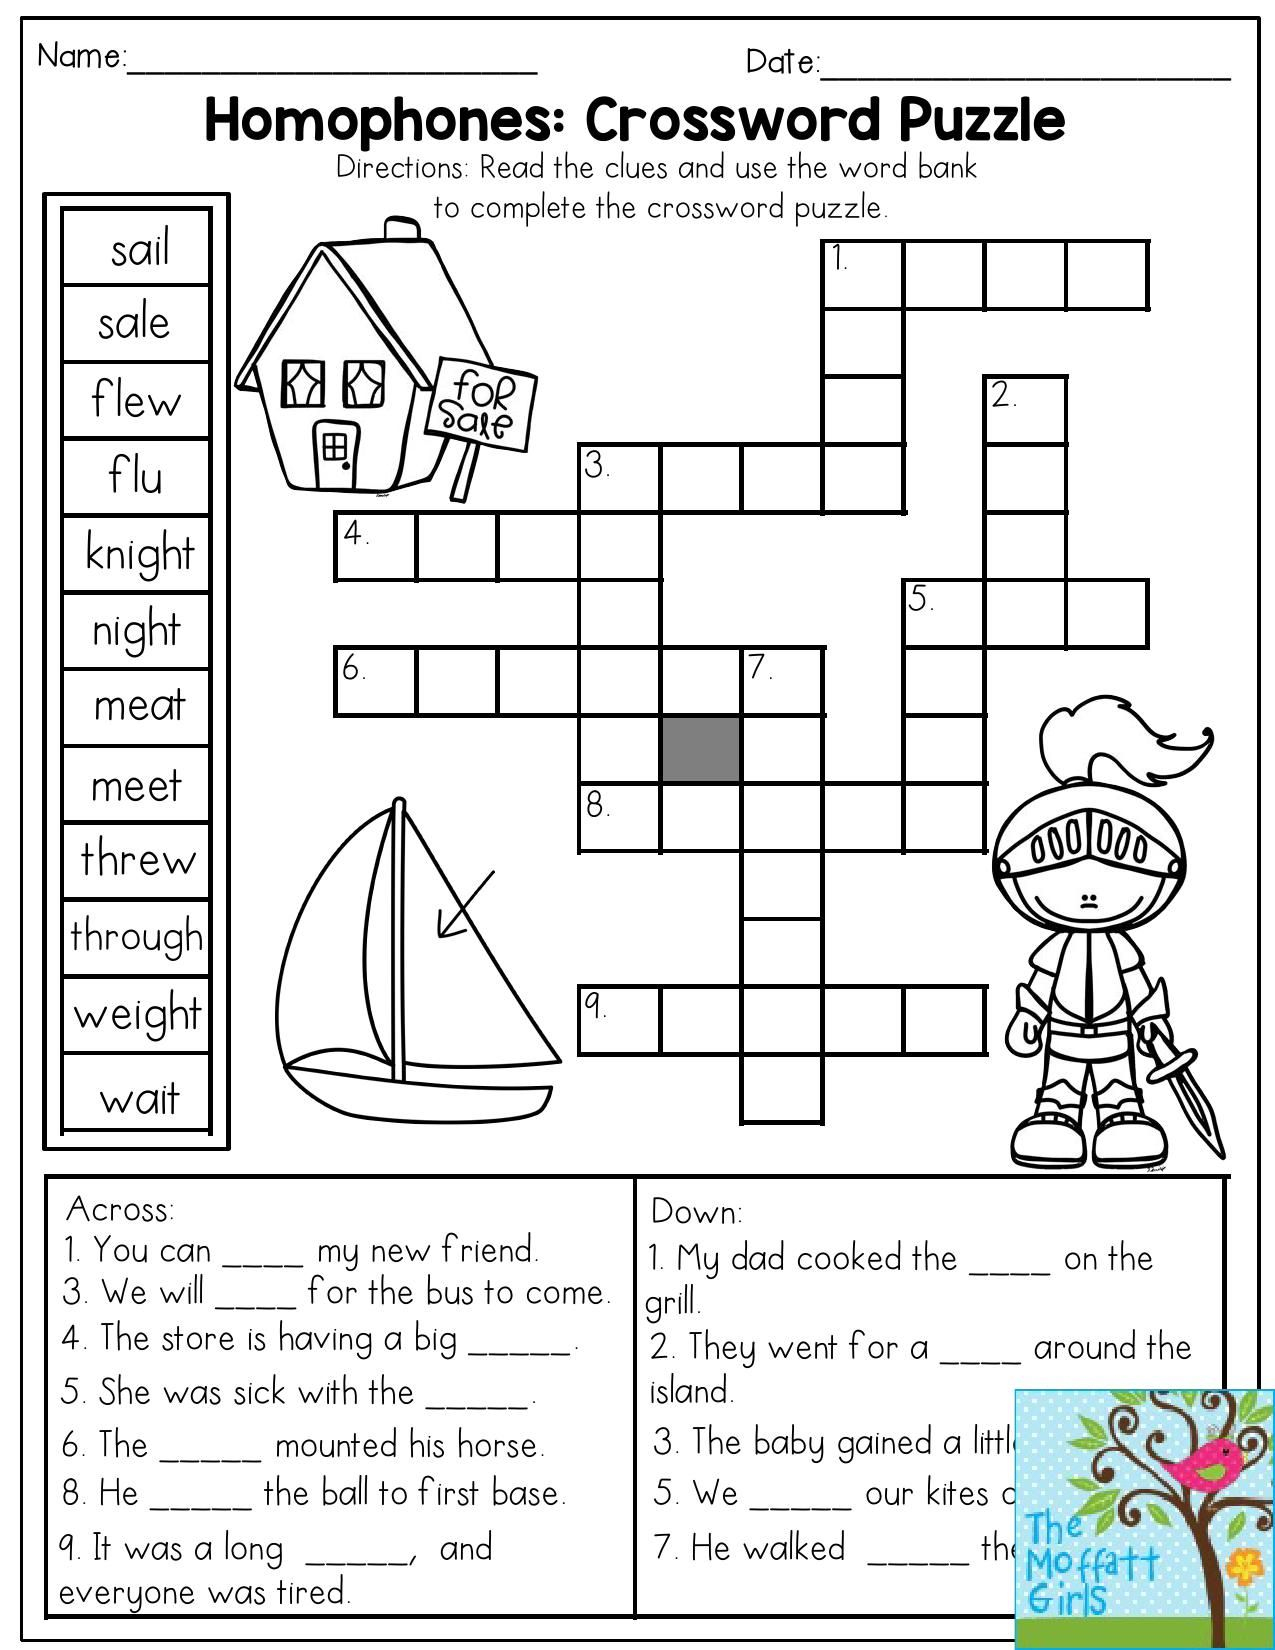 Homophones: Crossword Puzzle- Read The Clues And Use The Word Bank - Printable Crossword Puzzle For Grade 2